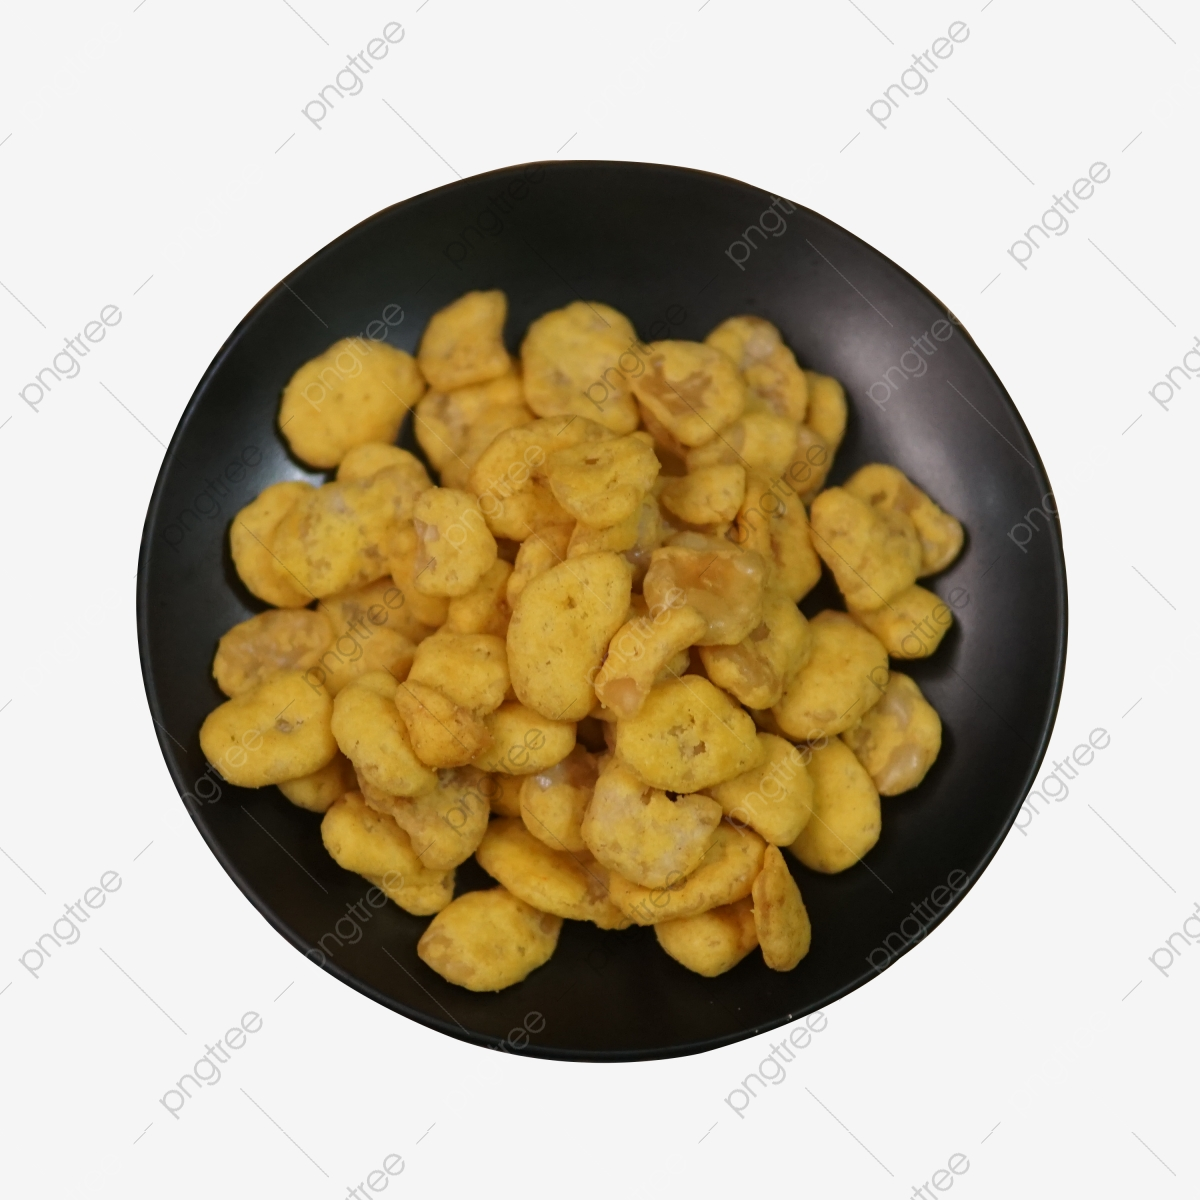 Black Plate Snacks Plates Black Png Transparent Clipart Image And Psd File For Free Download